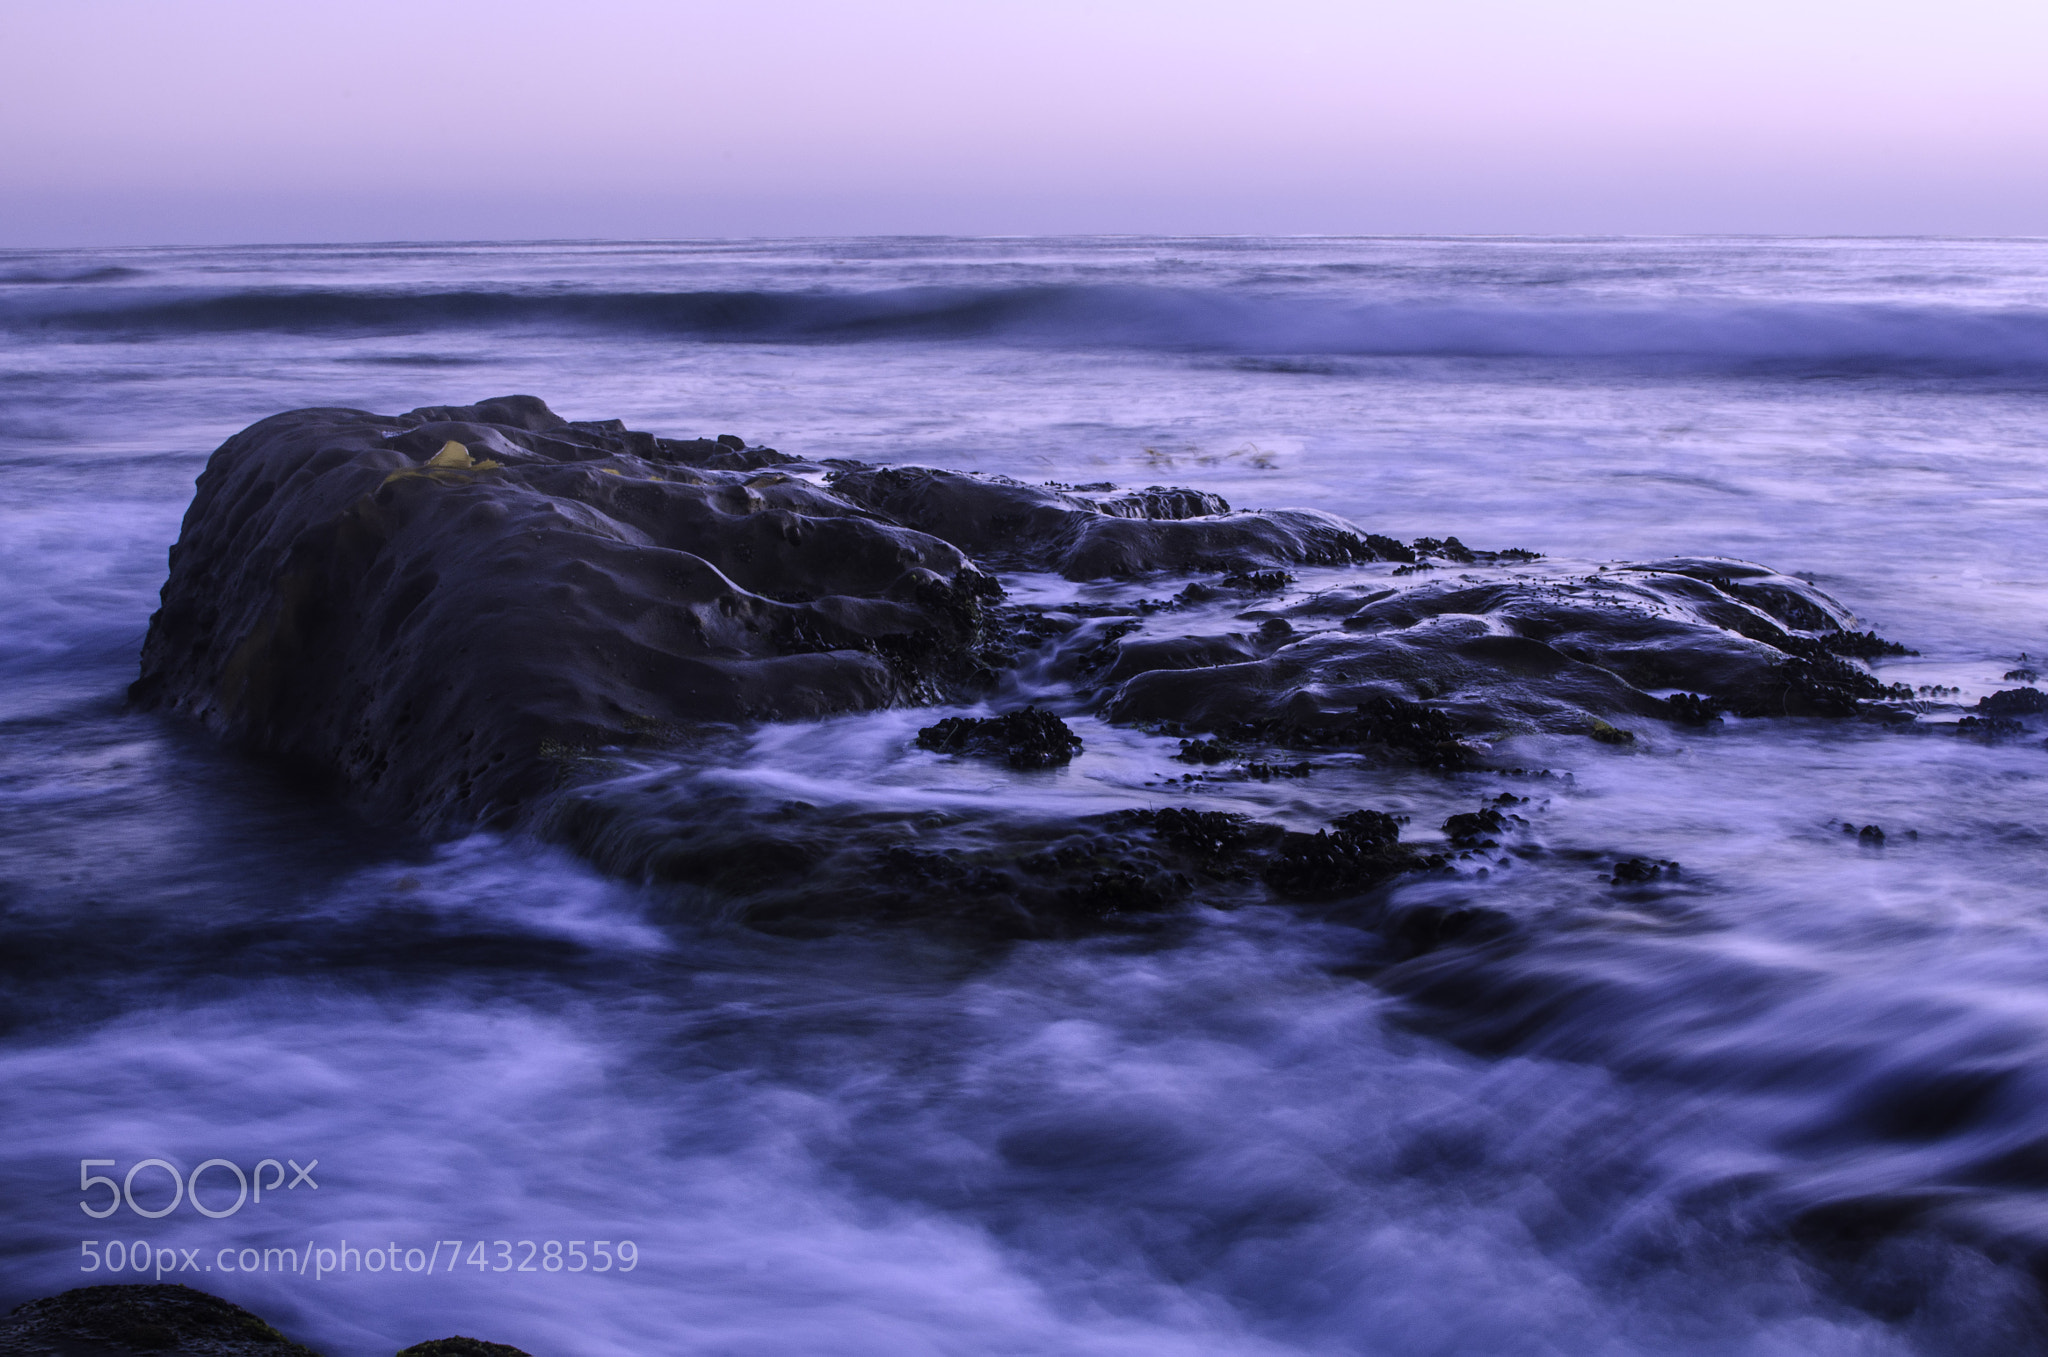 Photograph La Jolla Rock by Jack Lungu on 500px